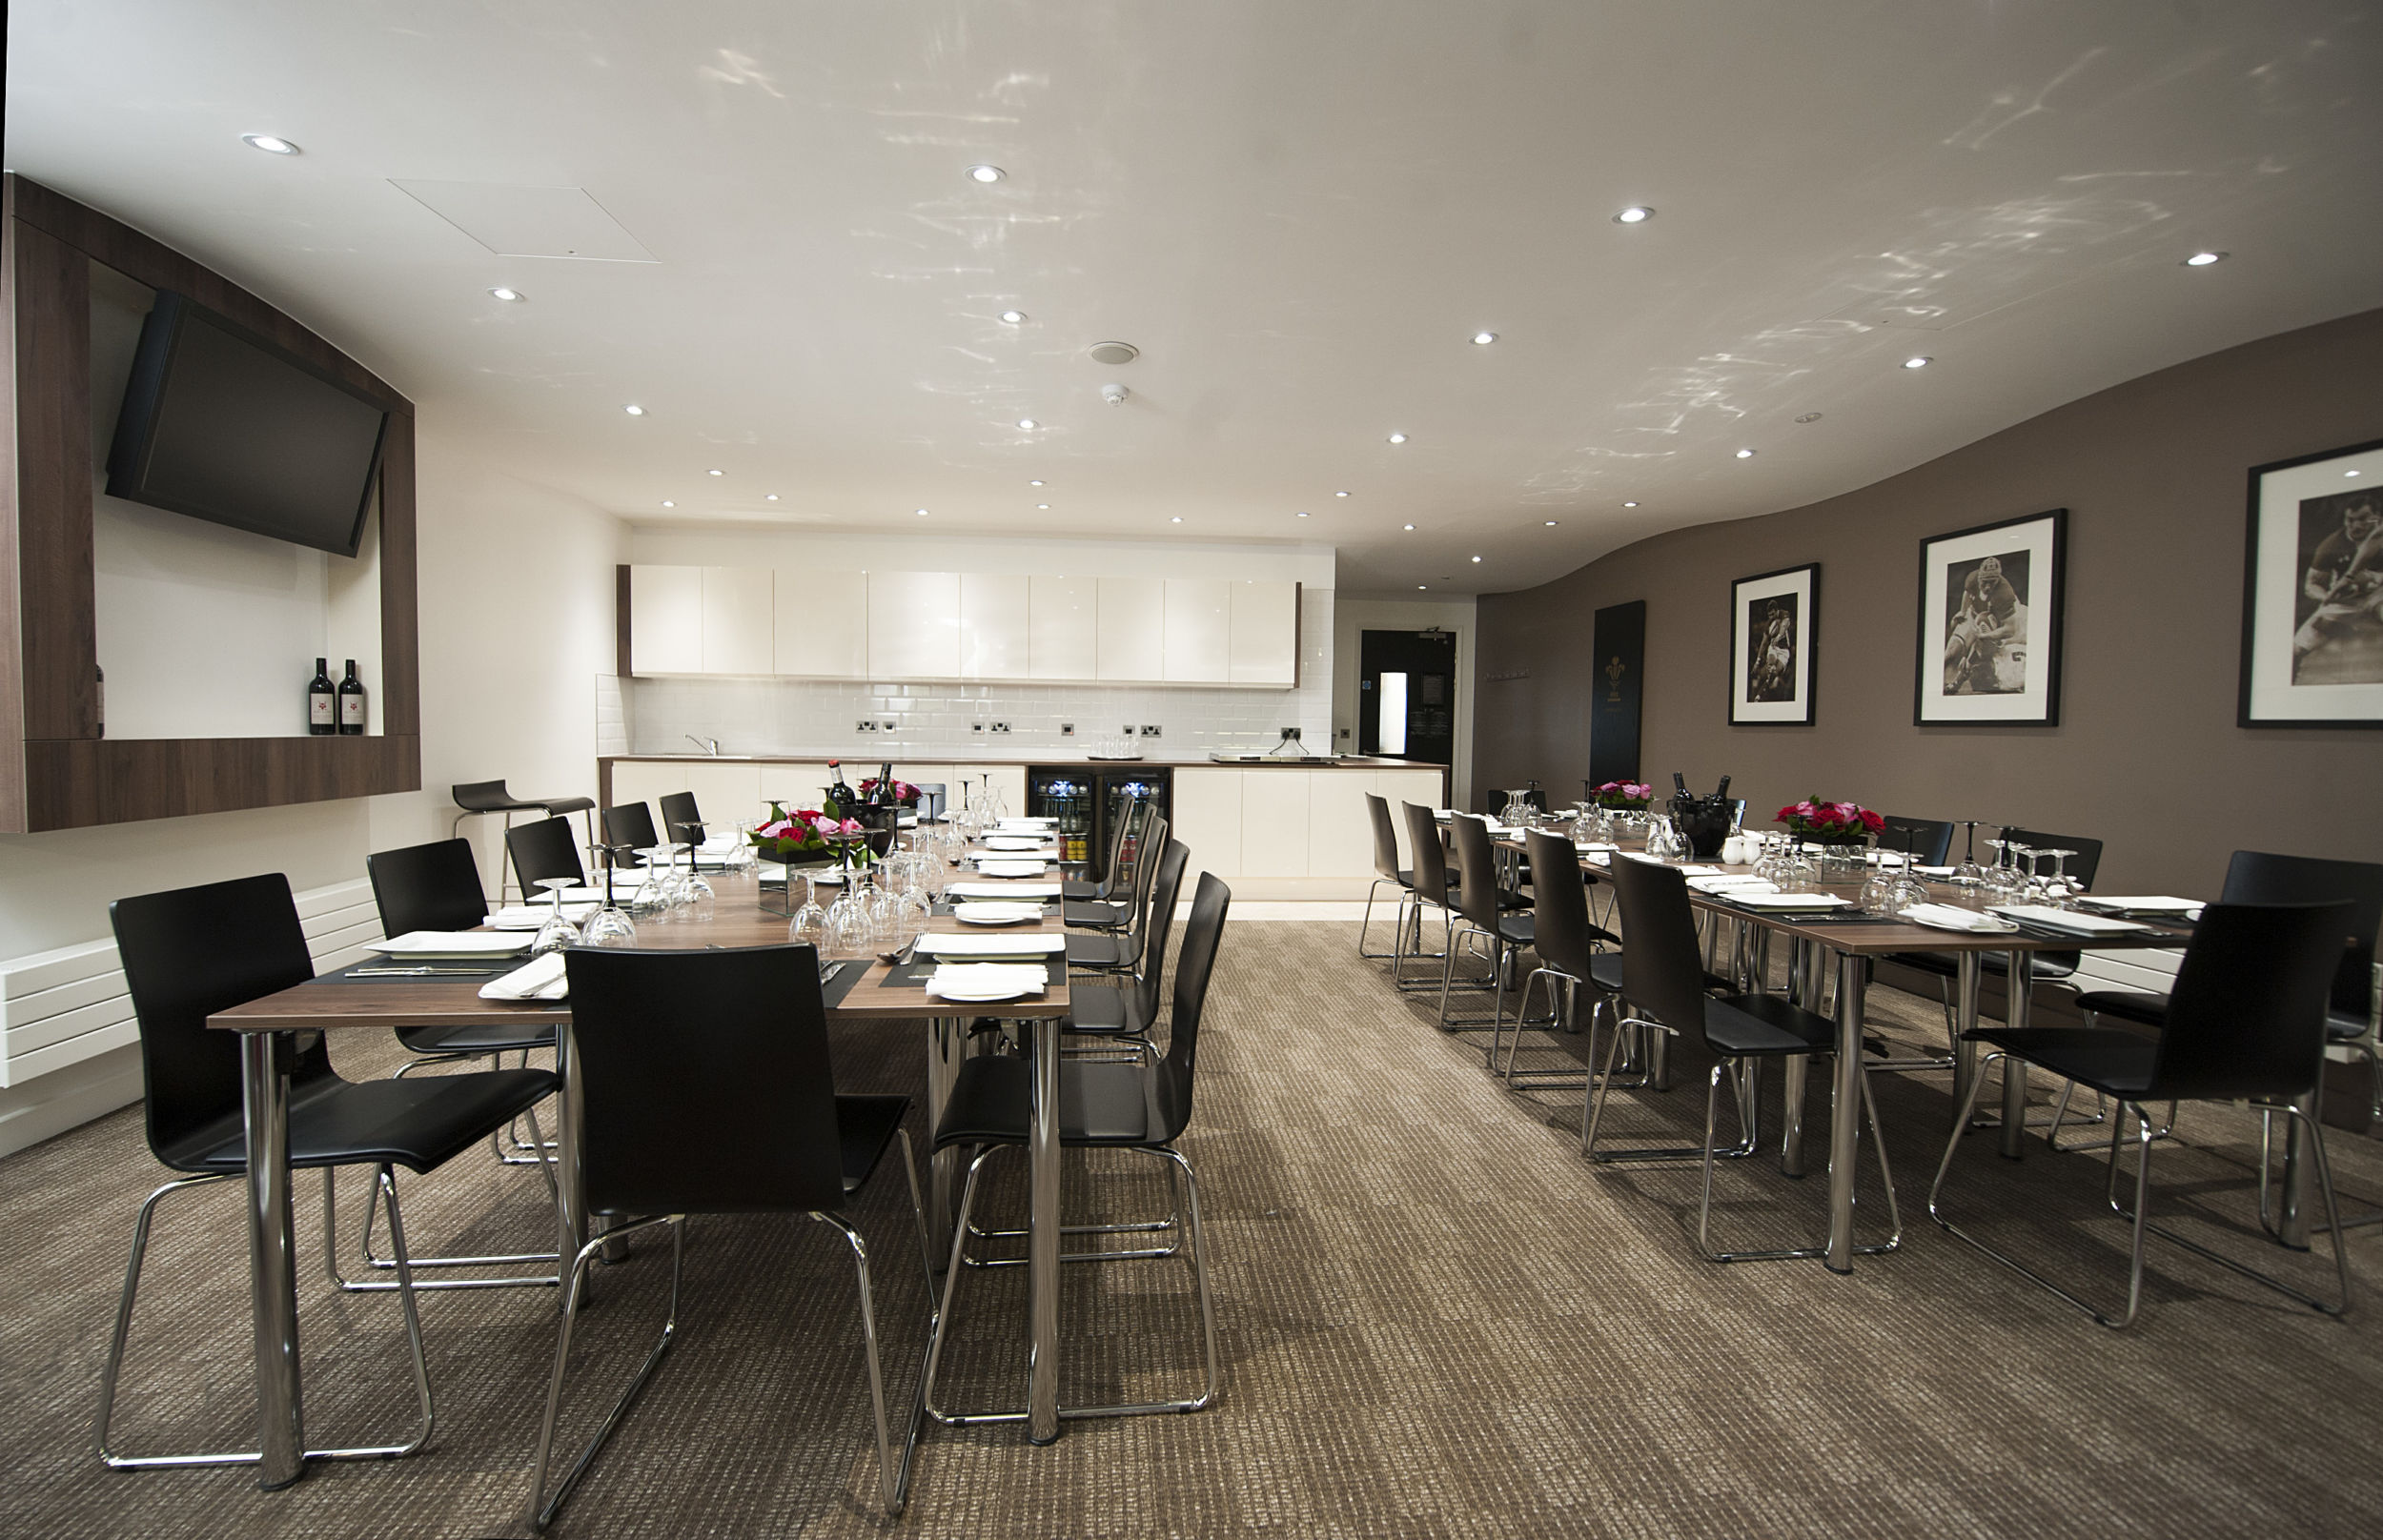 Welsh Wales 6 Nations World Cup Rugby VIP corporate sports hospitality